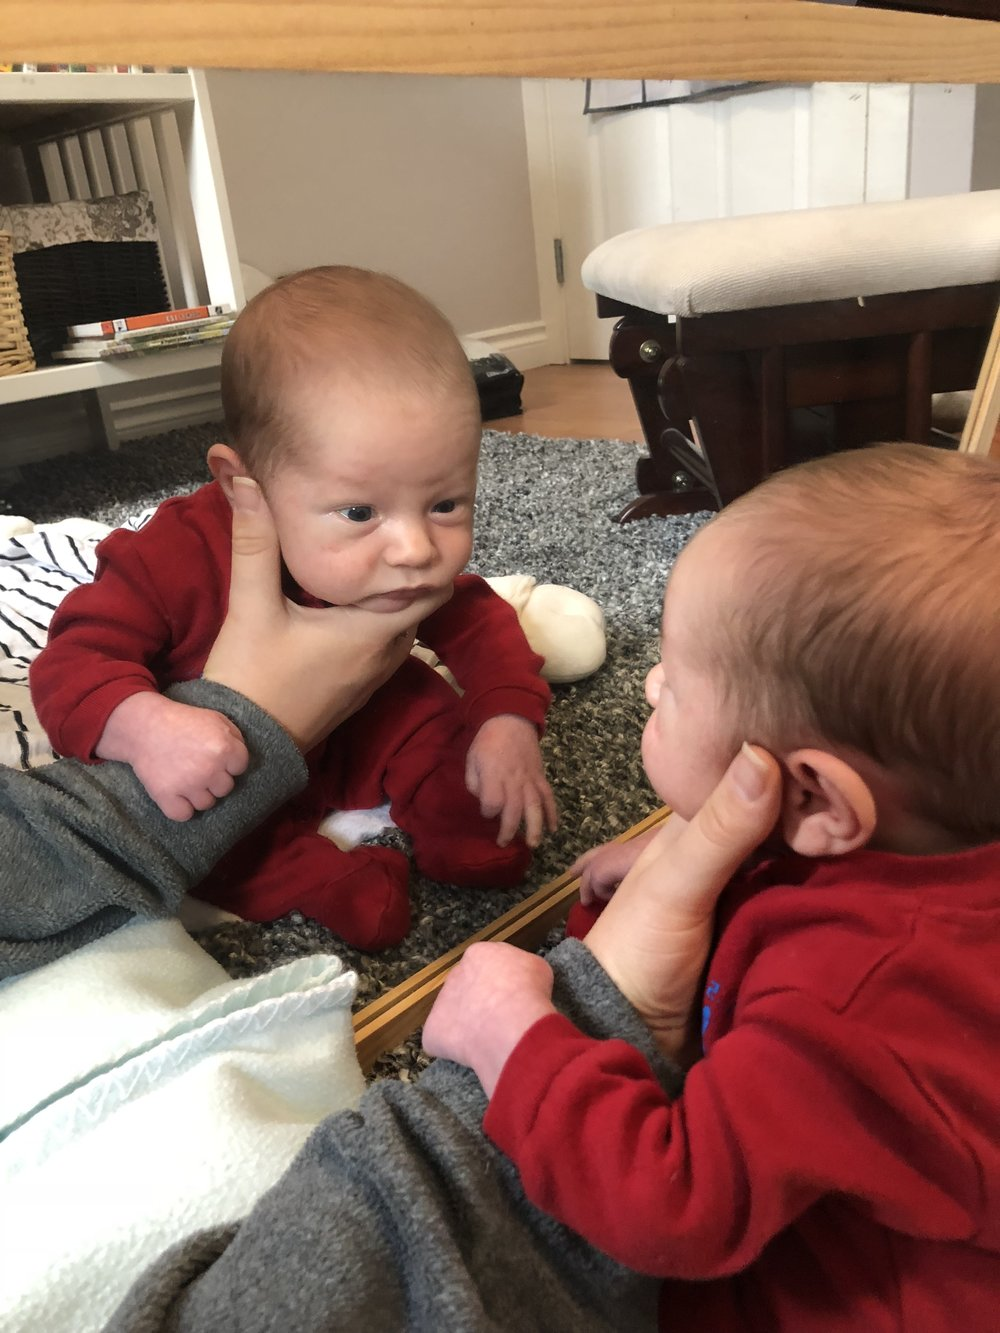 He loves looking at himself in the mirror.